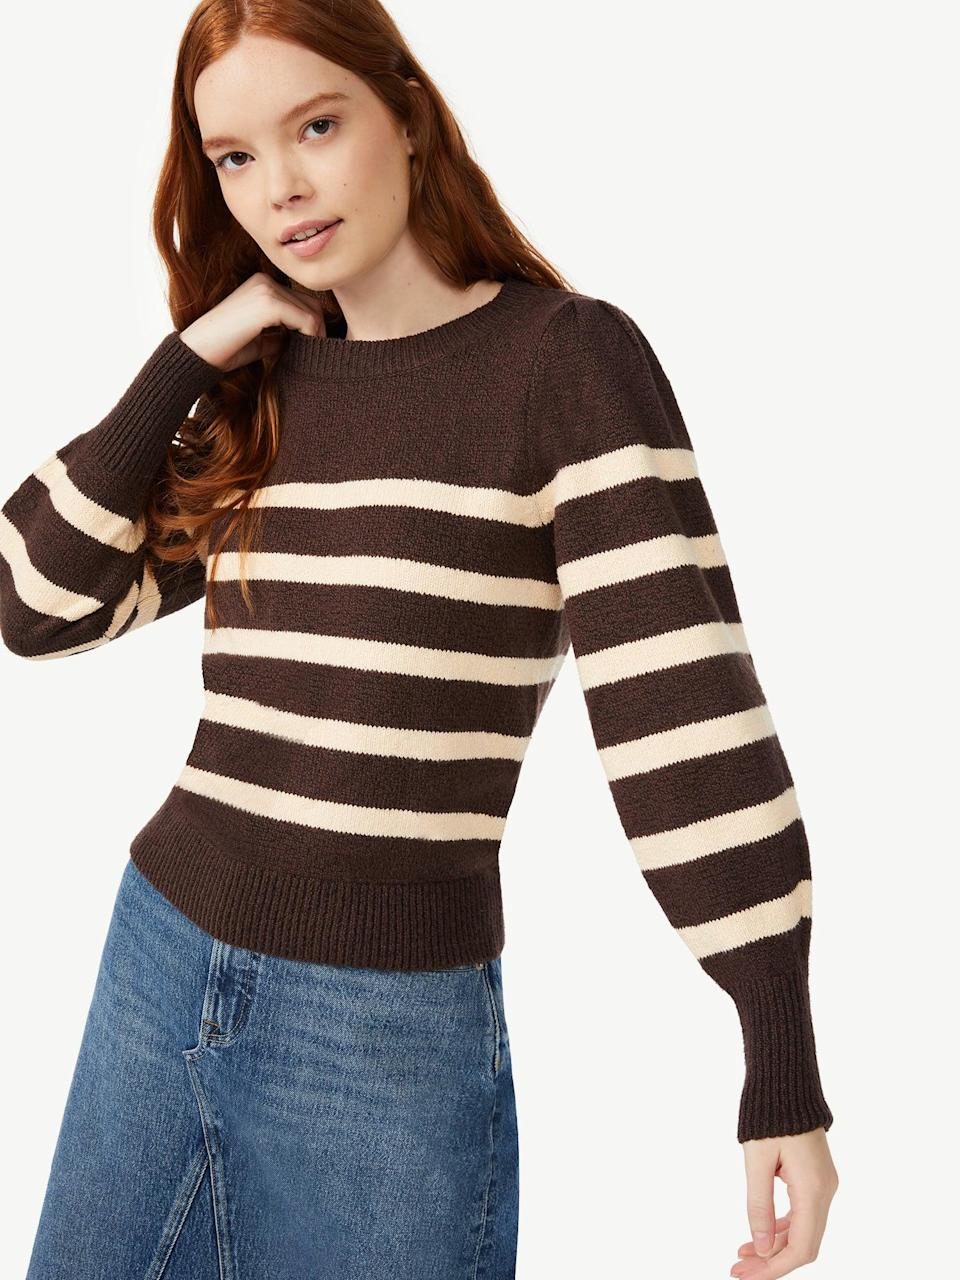 <p>The <span>Free Assembly Women's Puff Shoulder Sweater</span> ($24) features a timeless and classic stripe design with lovely puff-sleeve detailing that adds a touch of romanticism.</p>